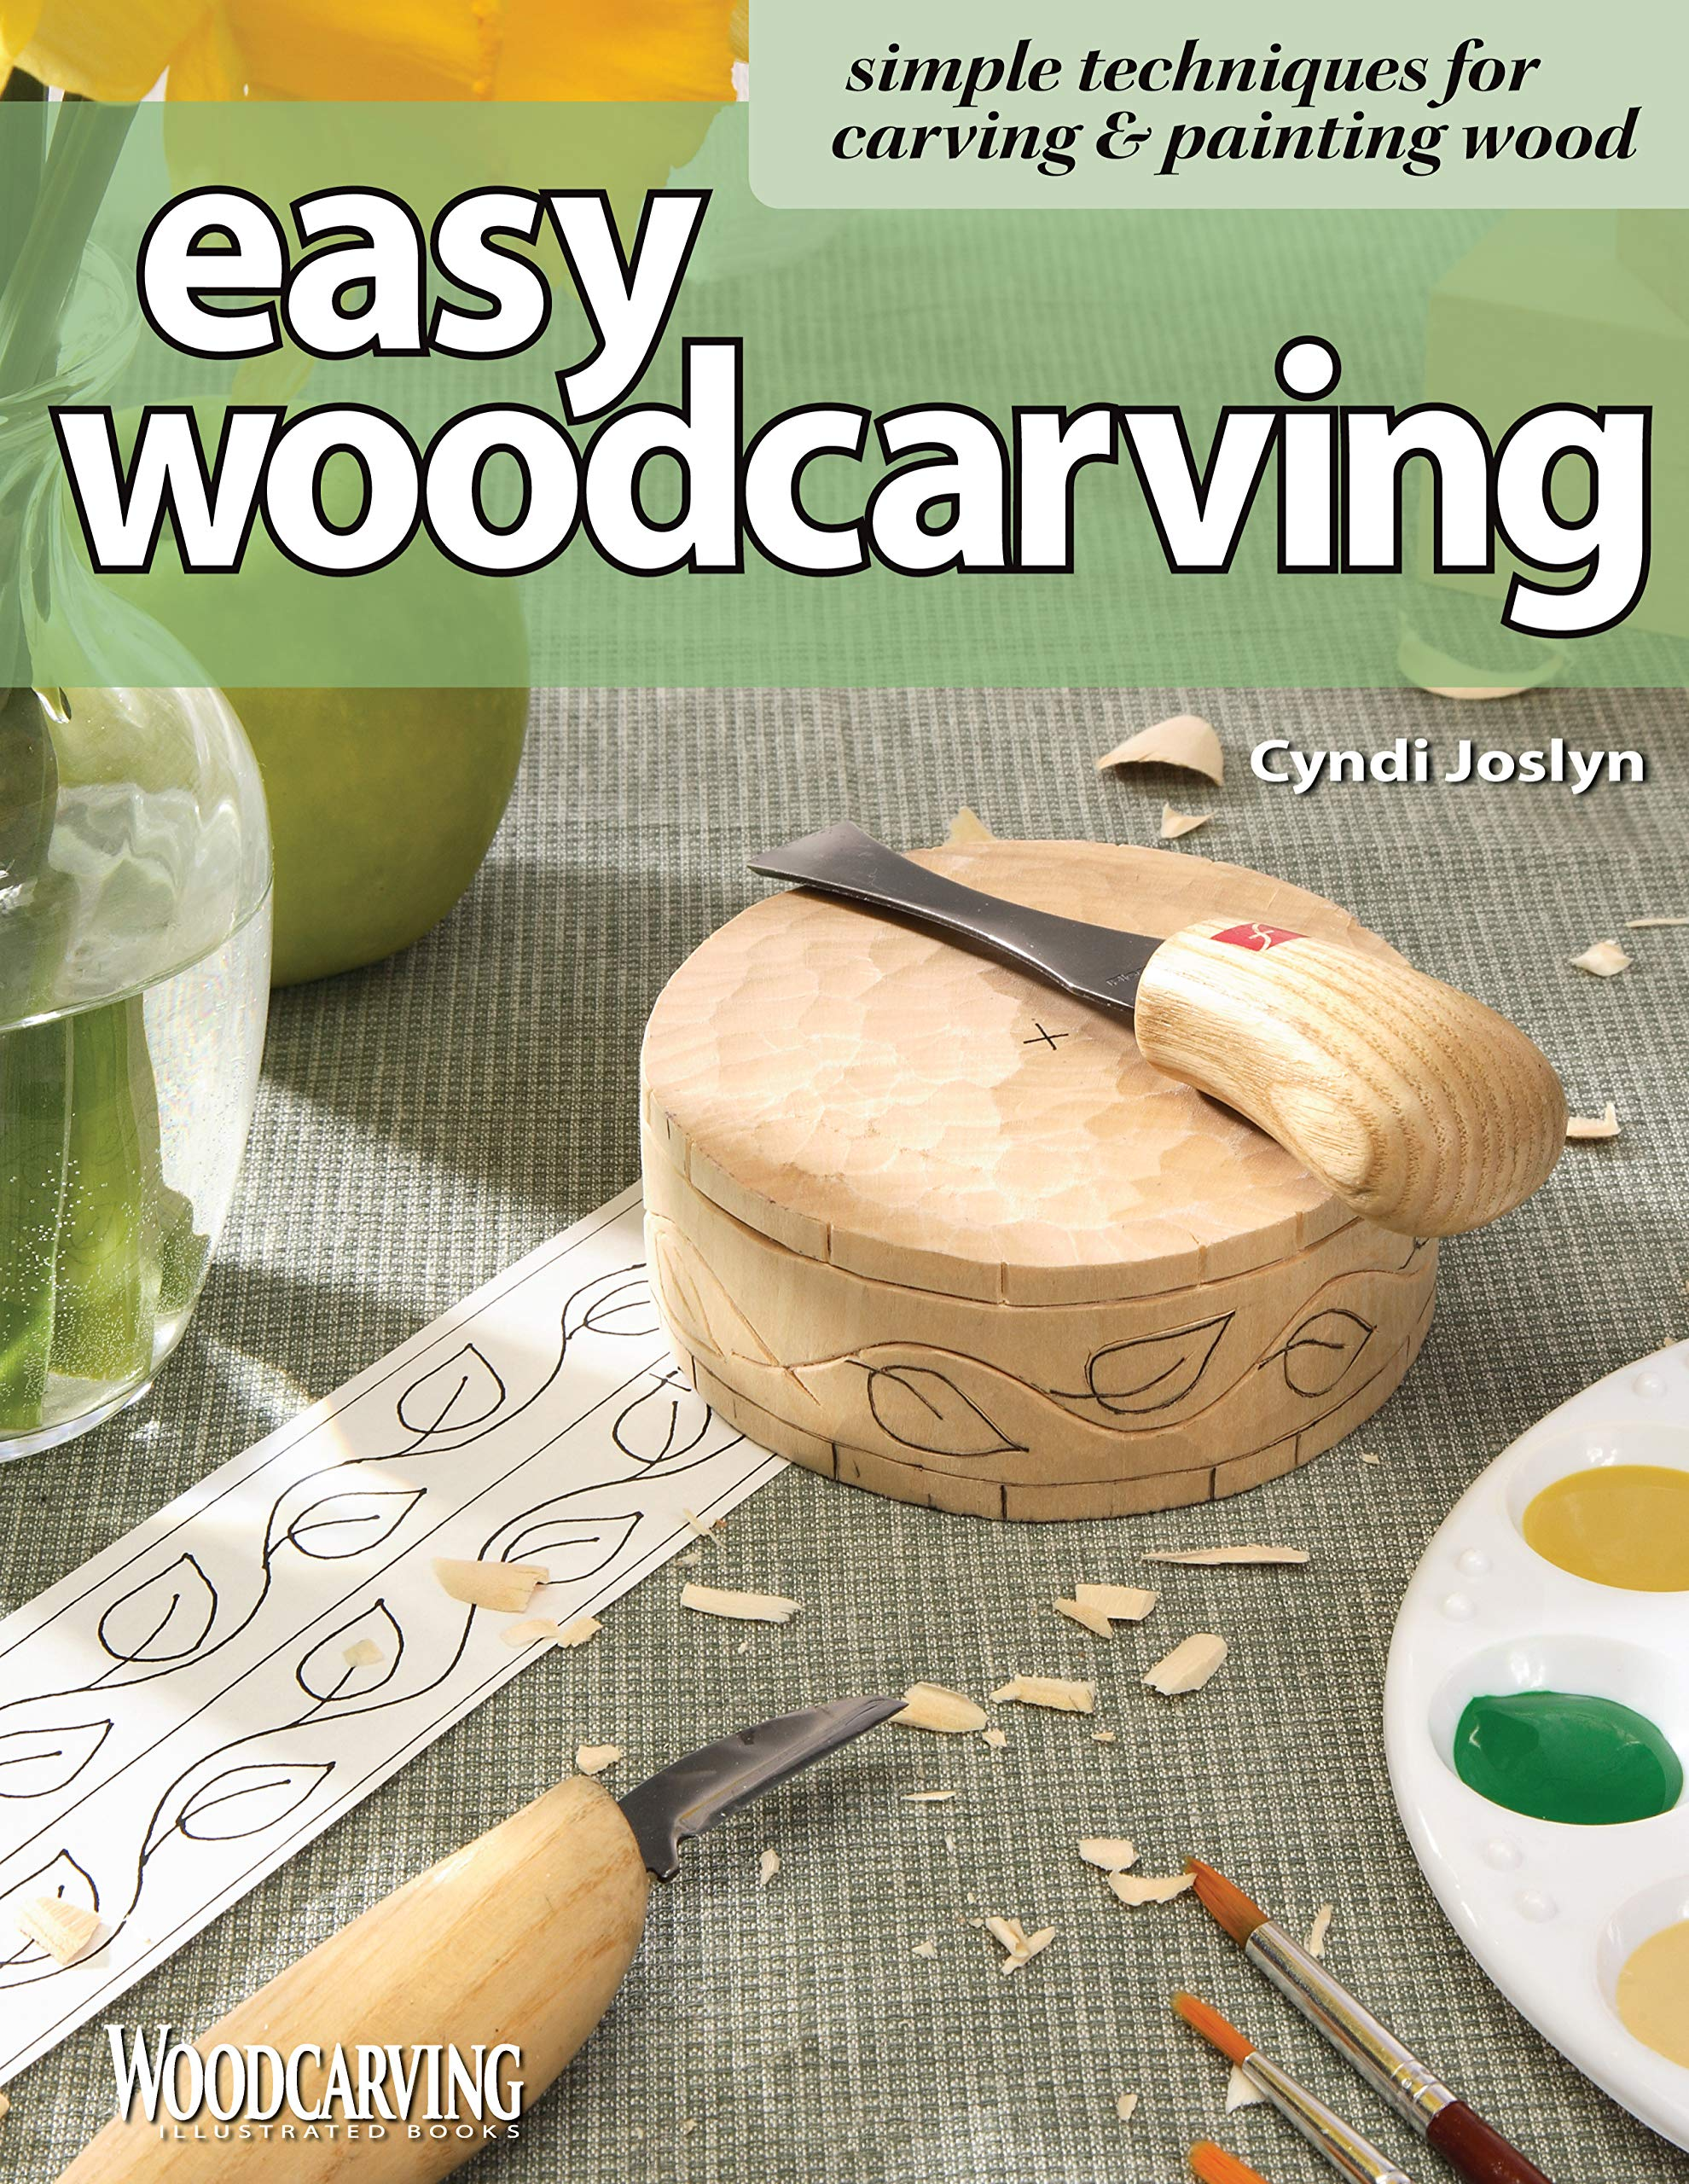 Easy Woodcarving Simple Techniques For Carving And Painting Wood